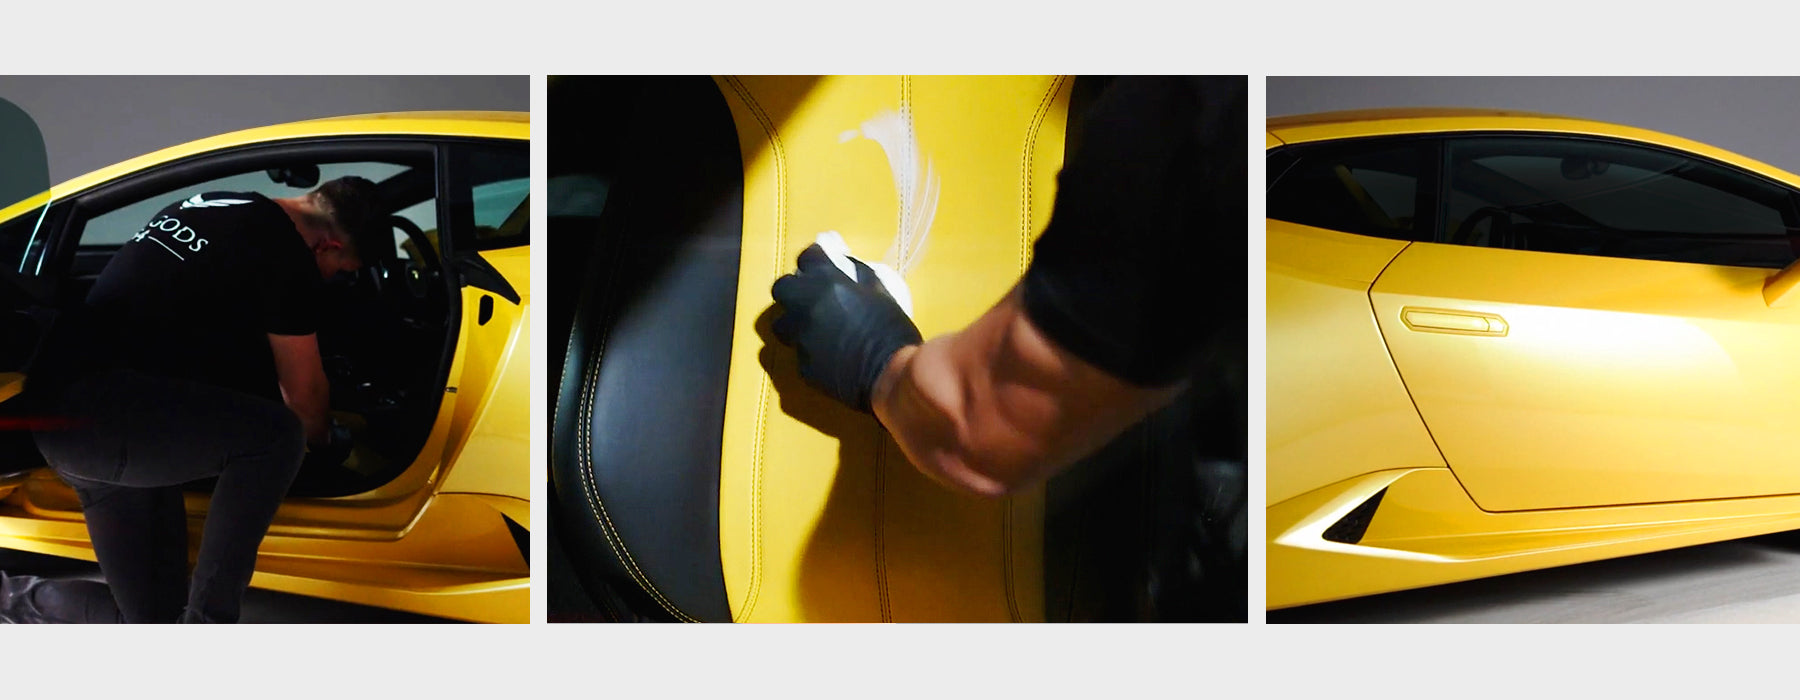 Yellow leather seats of a Lamborghini being cleaned